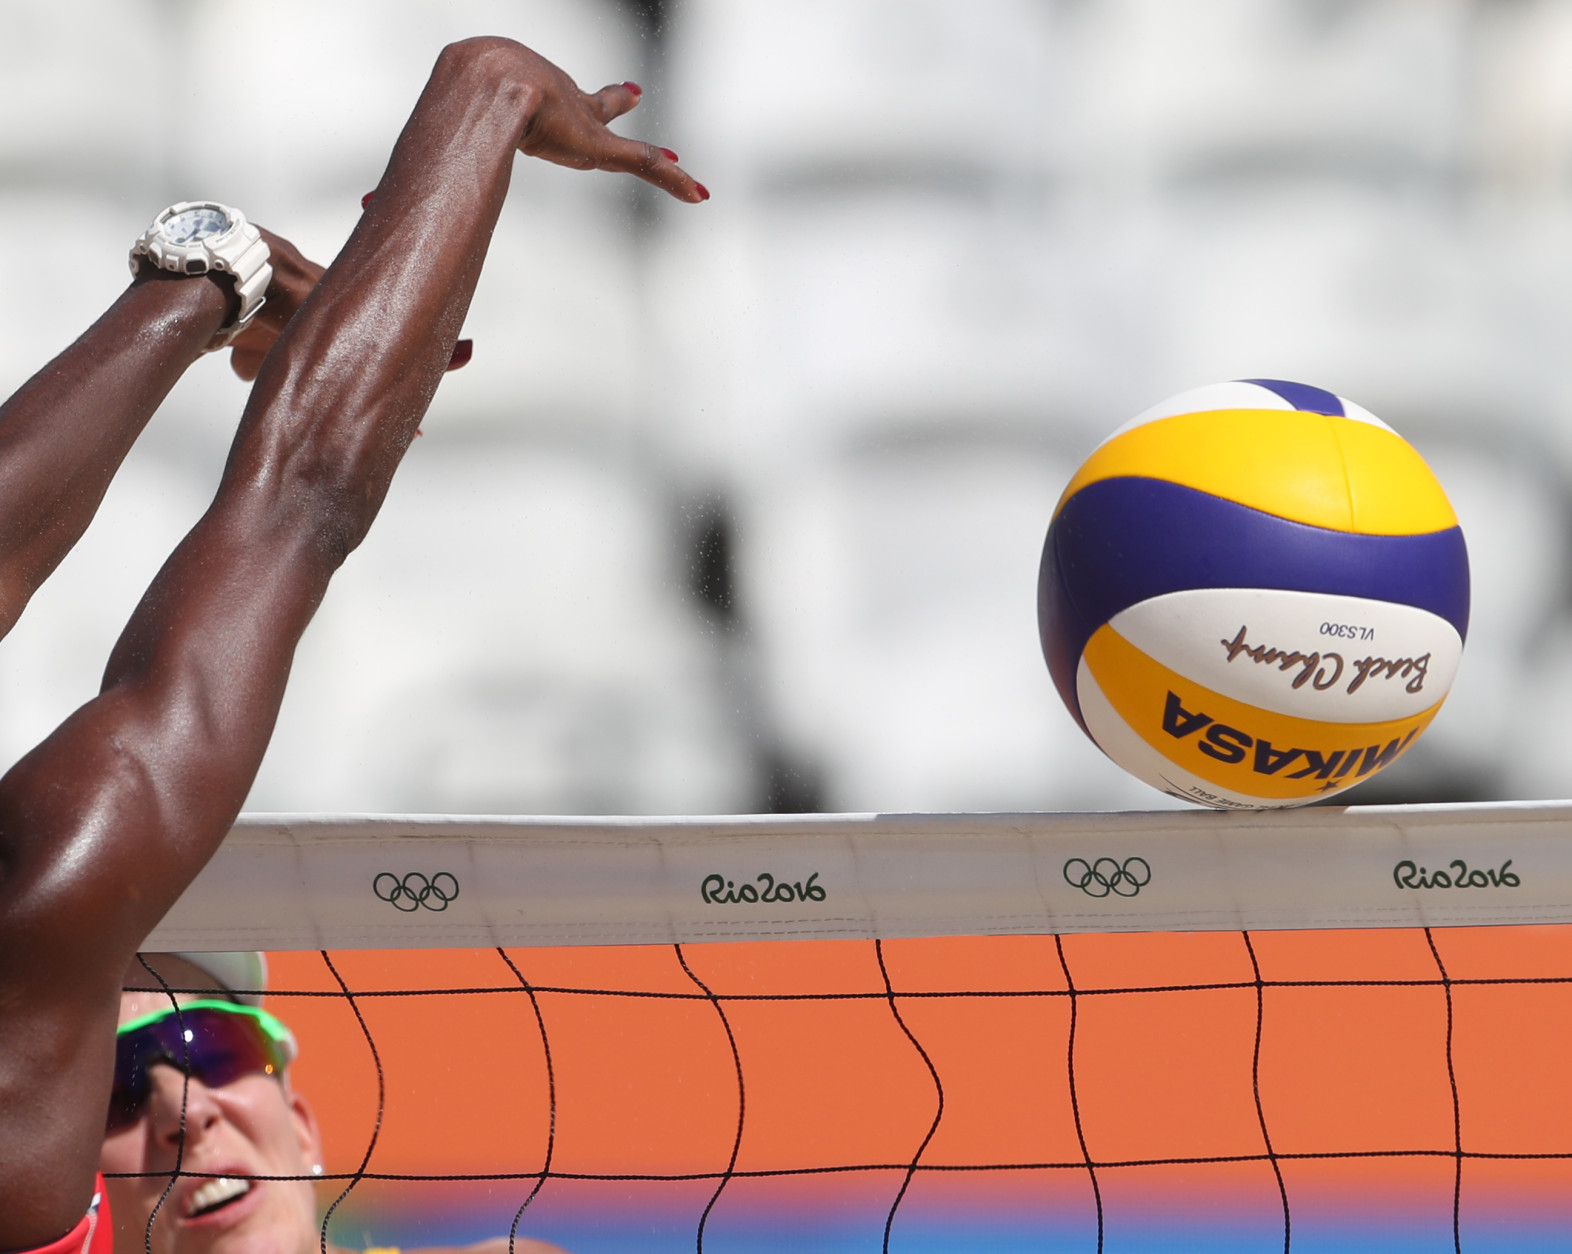 Costa Rica's Karen Cope Charless, left, tries to block Australia's Louise Bawden, right, during a women's beach volleyball match at the 2016 Summer Olympics in Rio de Janeiro, Brazil, Saturday, Aug. 6, 2016. (AP Photo/Petr David Josek)